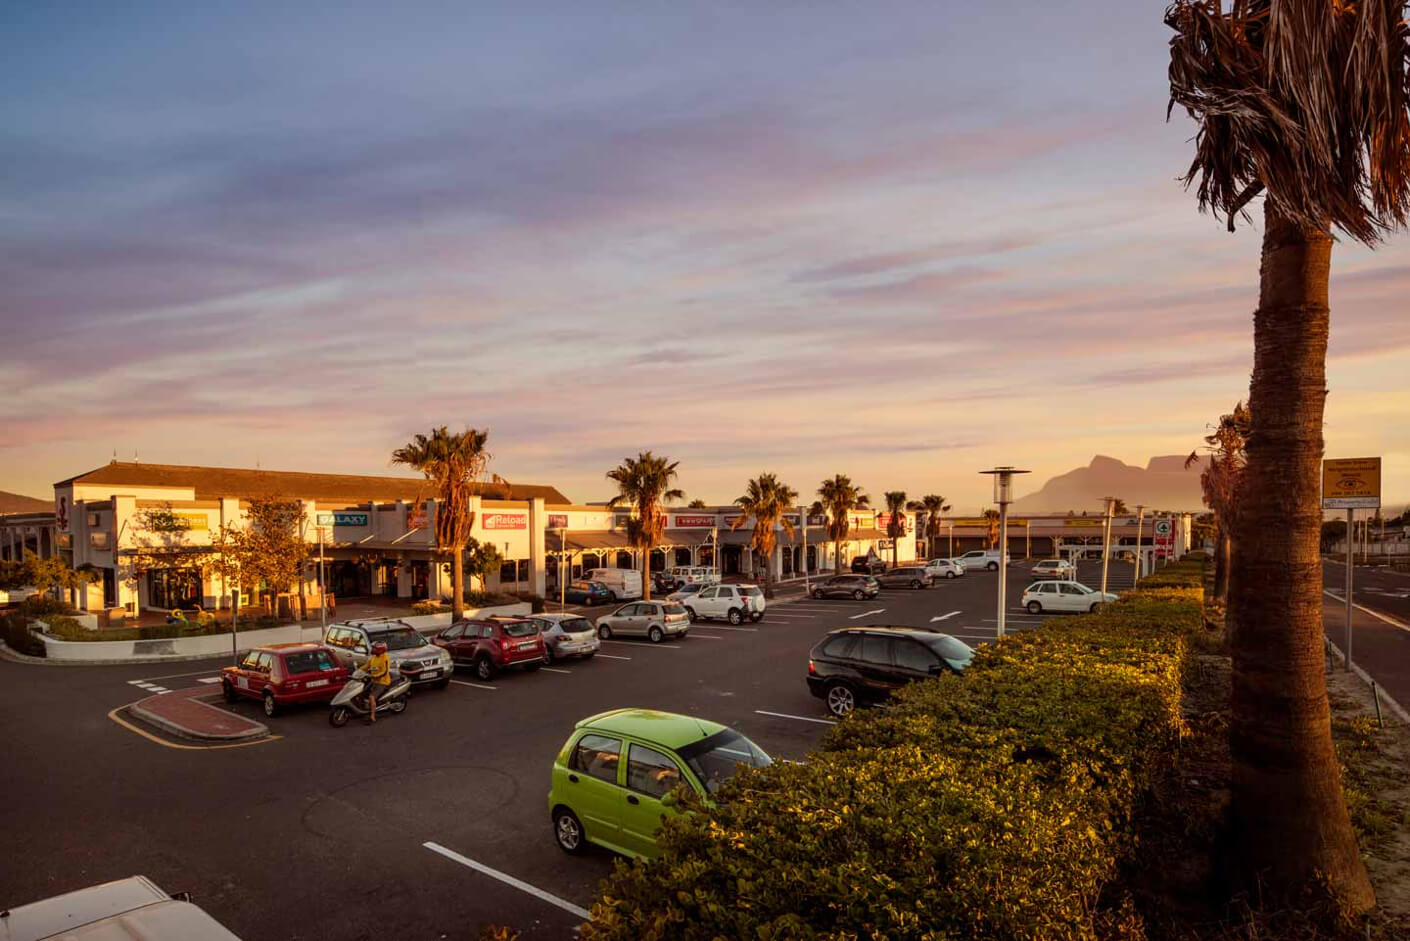 Flamingo Square building and parking lot in Table View managed by Dorpstraat Properties